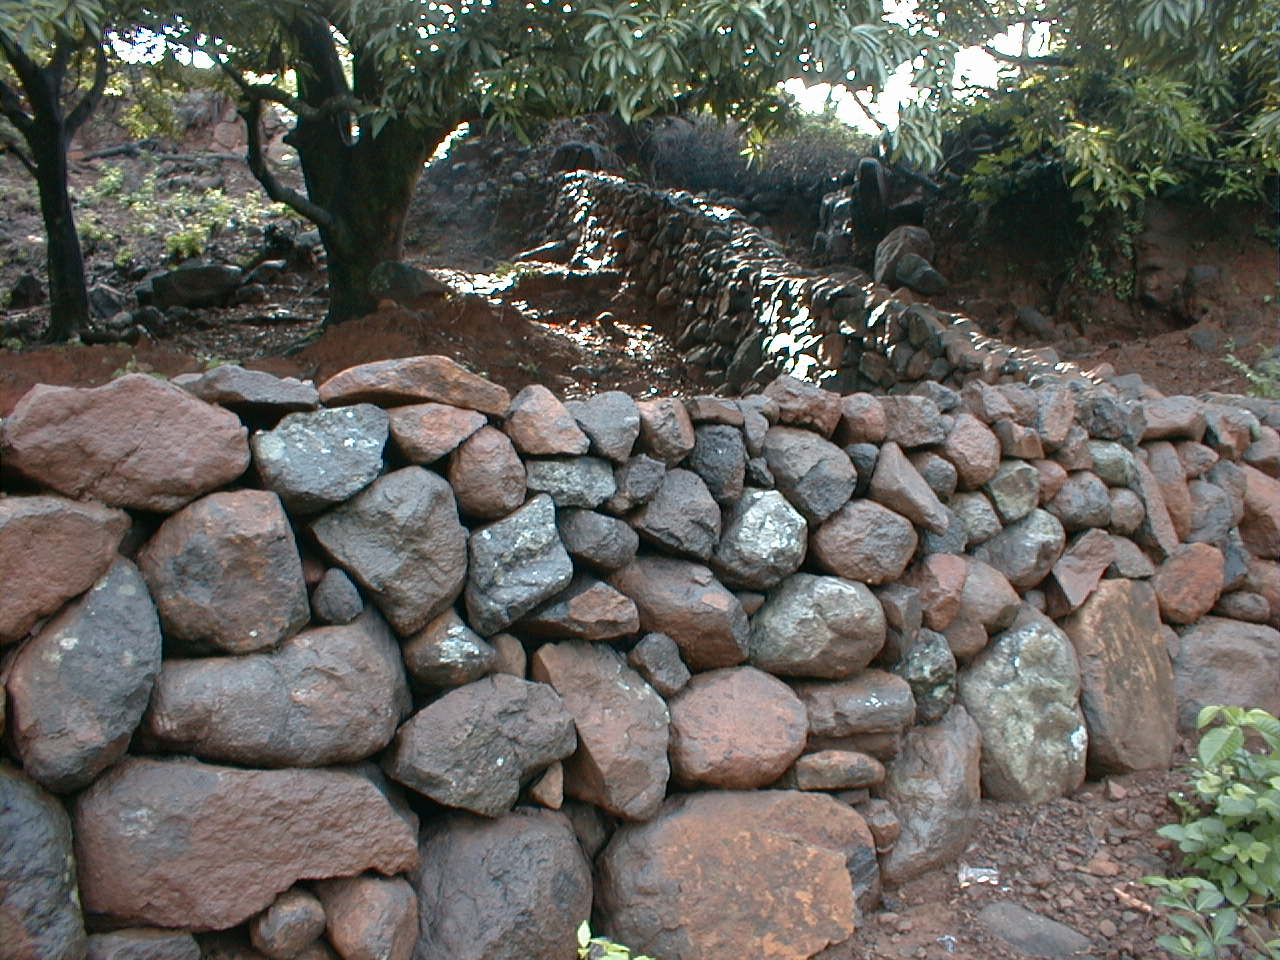 File:HN999sRamon~rock-walls.jpg